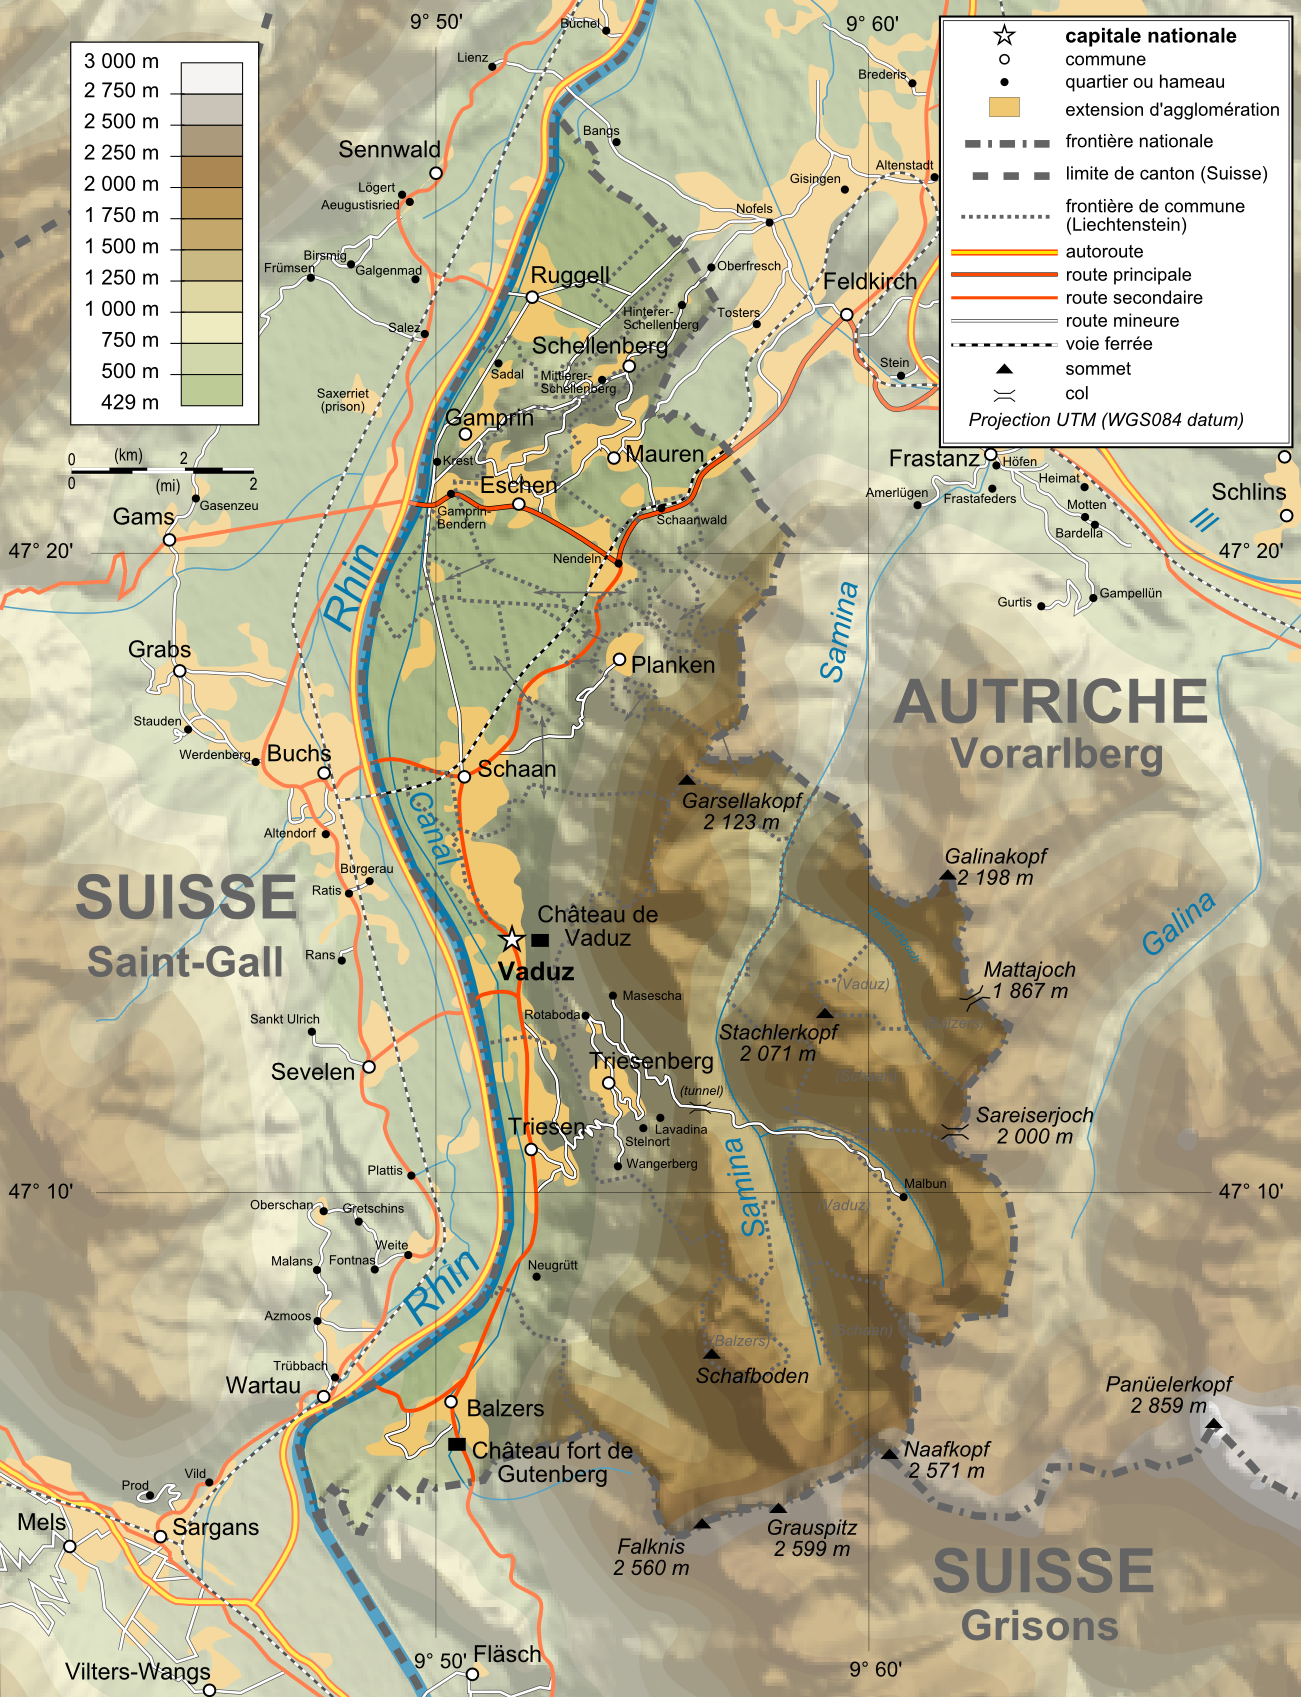 FileLiechtenstein Topographic Mapfrpng Wikimedia Commons - Liechtenstein map